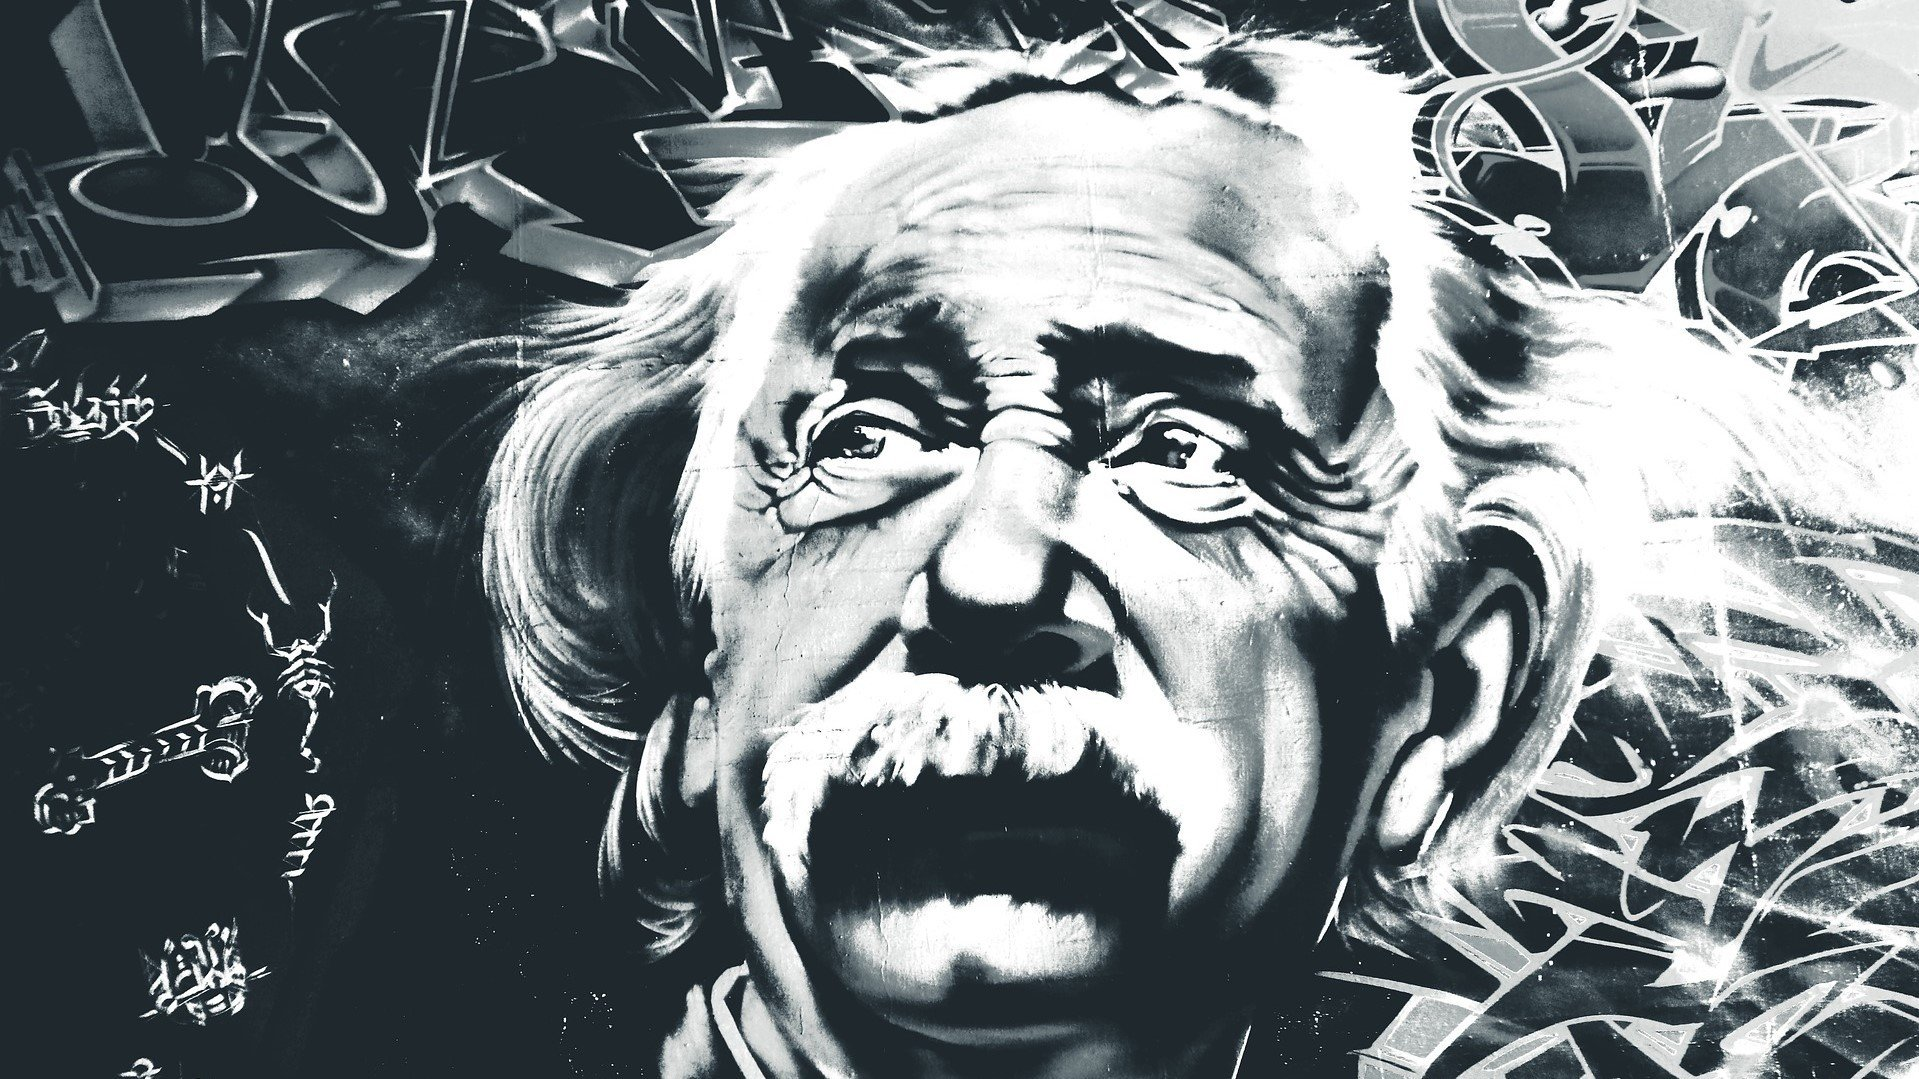 A mural of Einstein, who probably felt like a fraud from time to time.